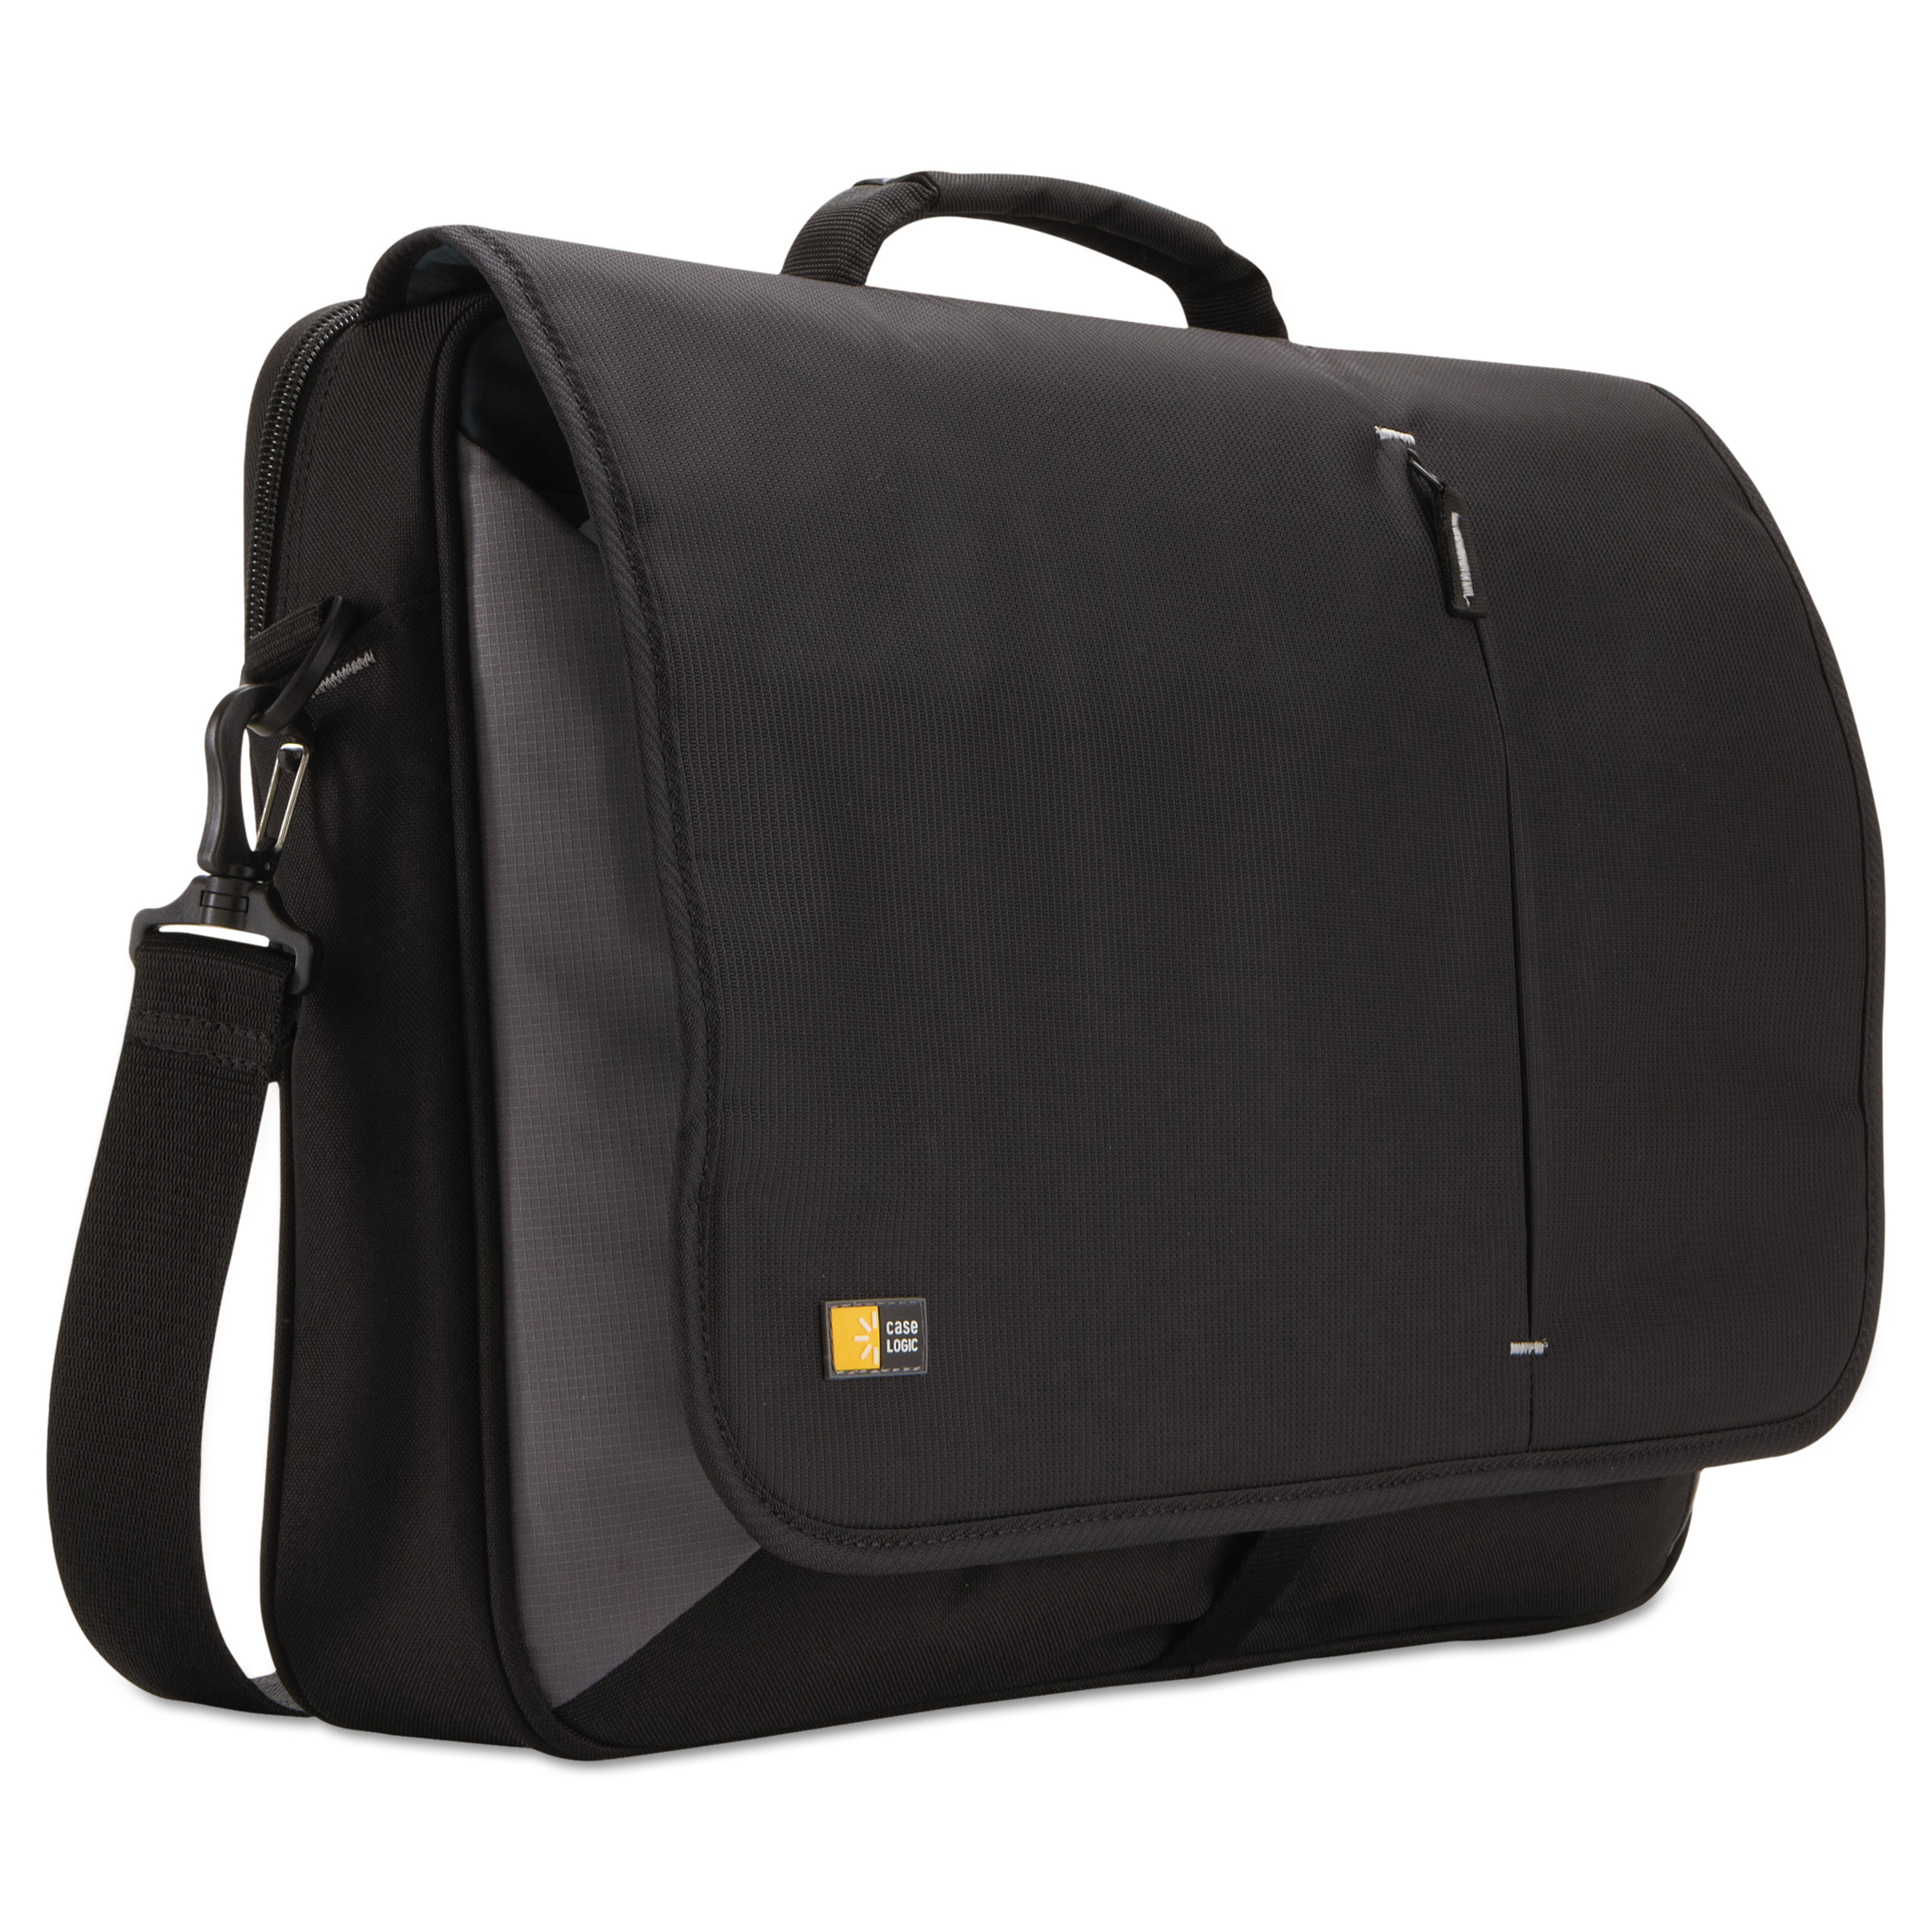 "Case Logic 17"" Laptop Messenger, 3 3/8 x 17 3/4 x 13 3/4, Black"